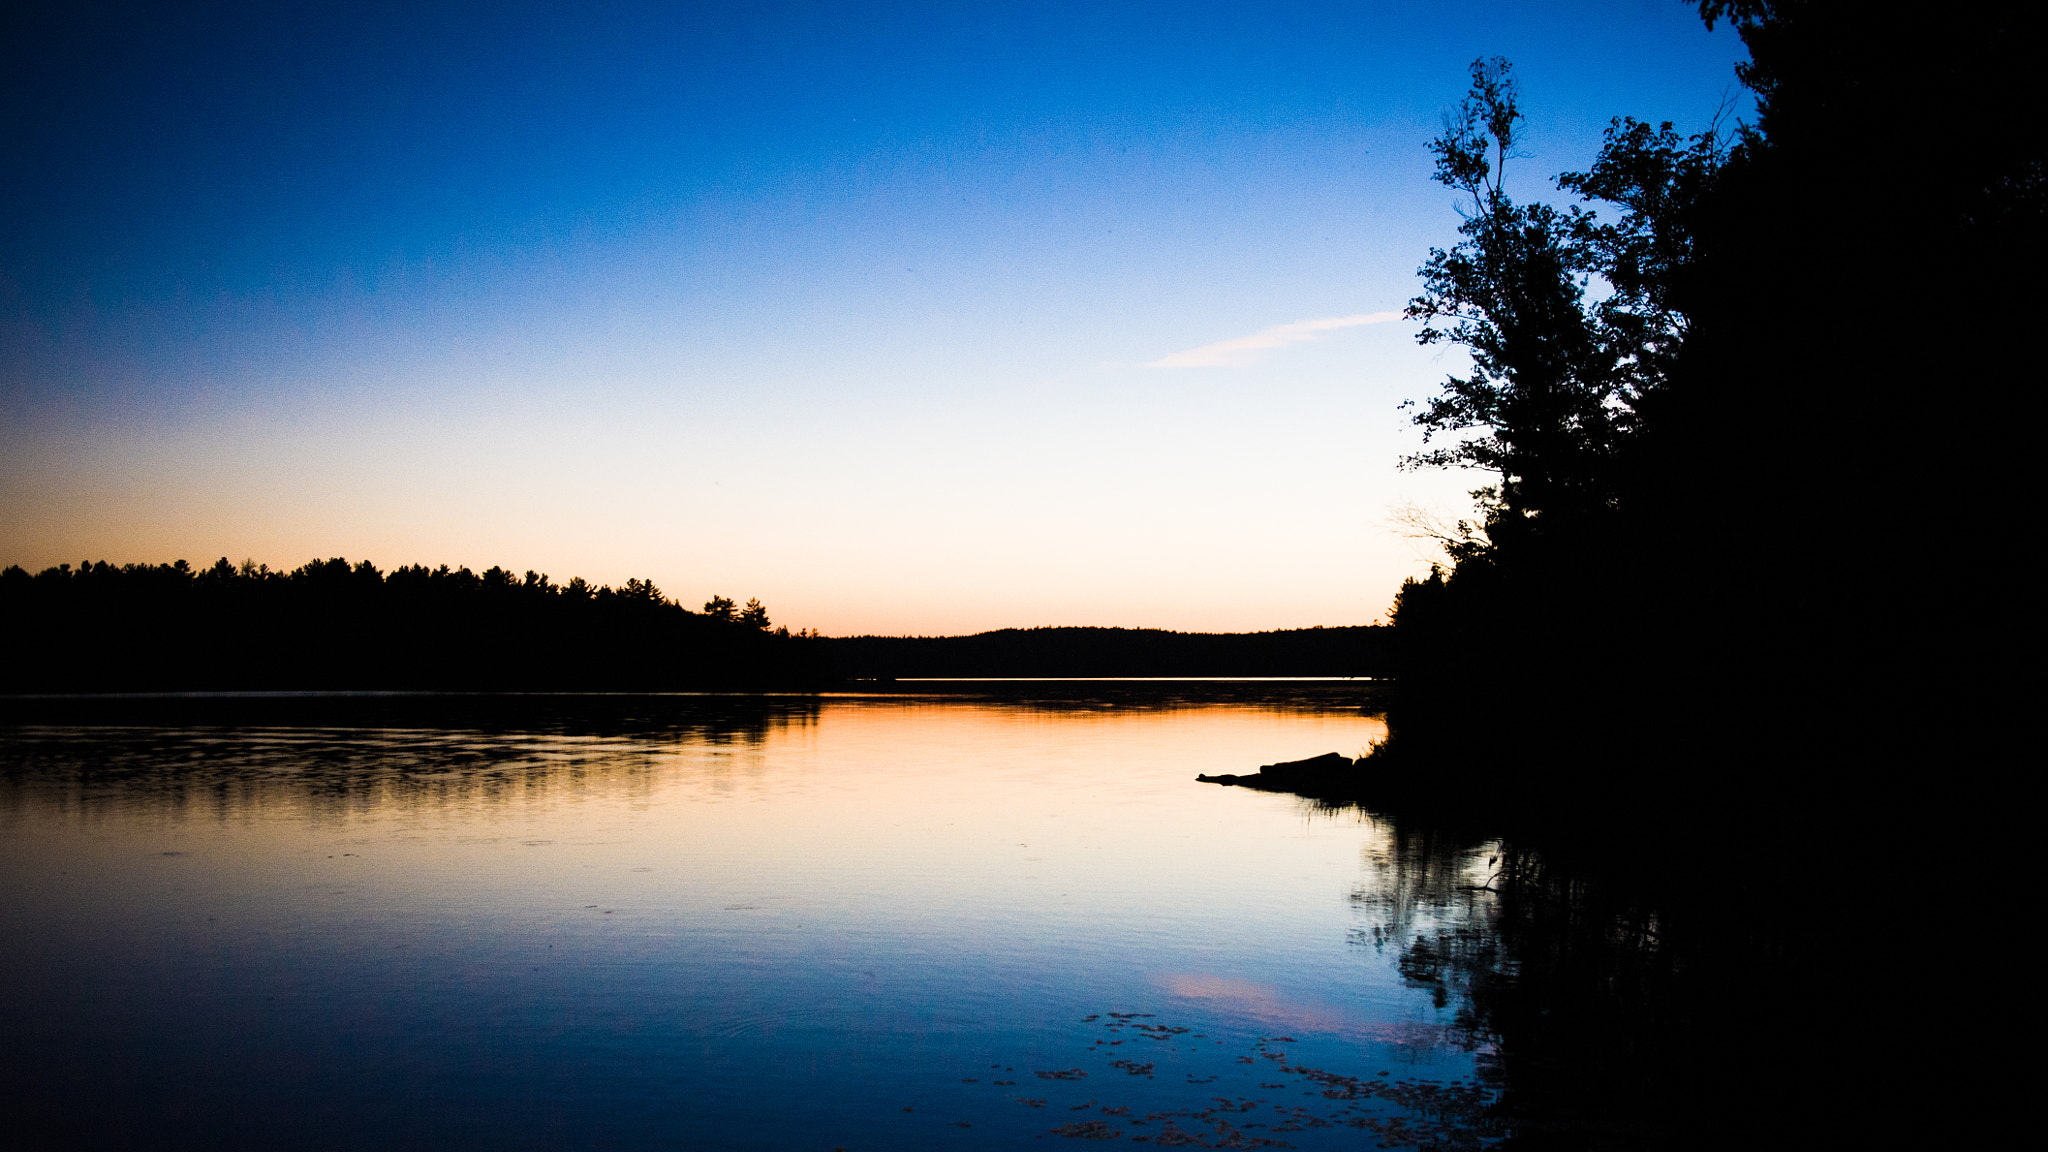 Photograph Sunset on Joeperry Lake, Ontario * 8737 by Mark Shannon on 500px